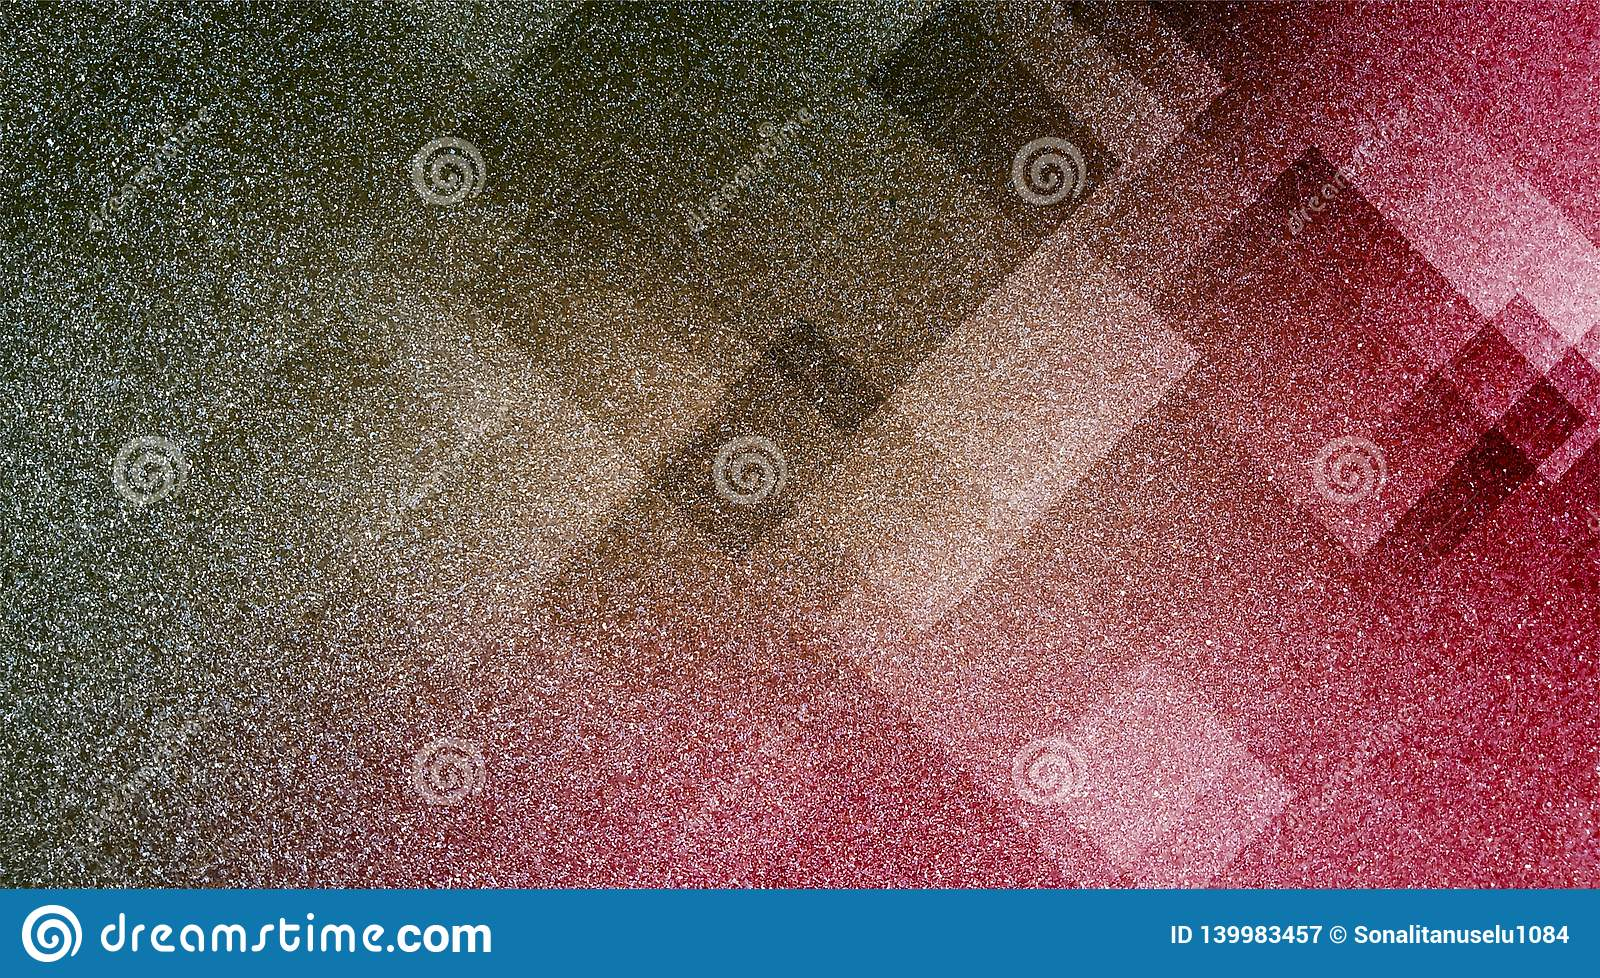 Abstract brown and pink background shaded striped pattern and blocks in diagonal lines with vintage blue brown and pink texture.